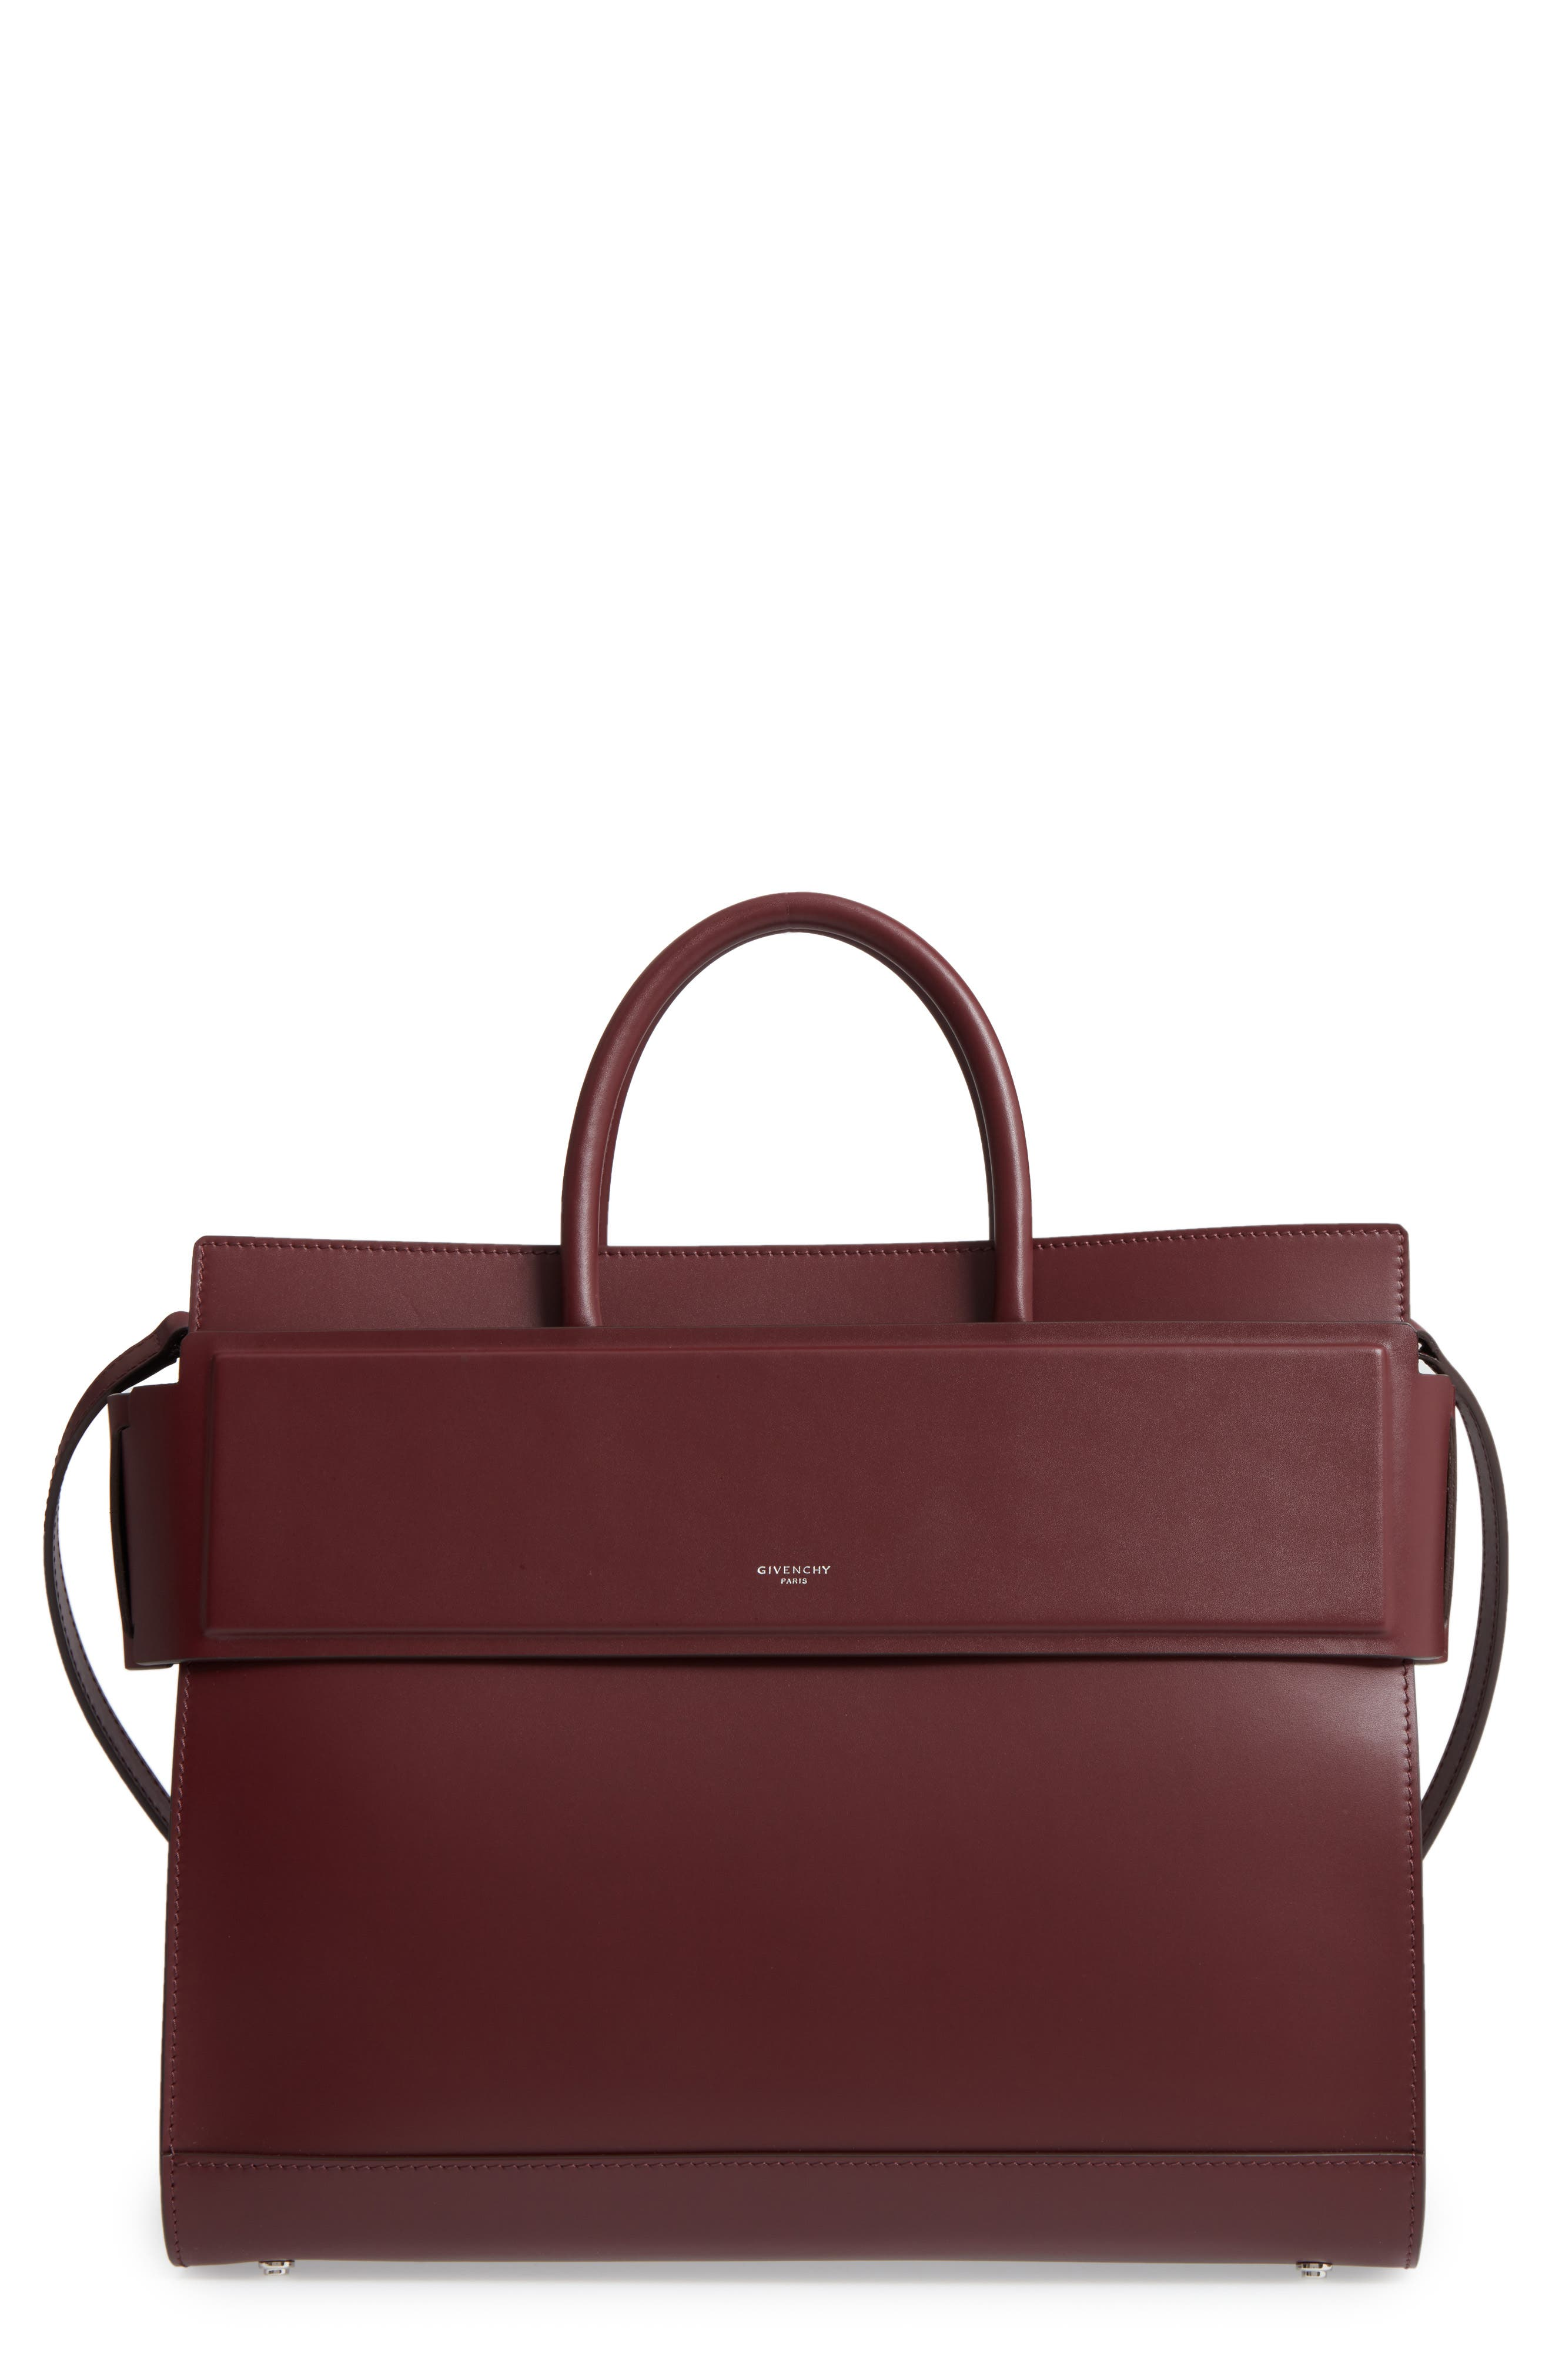 Givenchy Horizon Calfskin Leather Tote